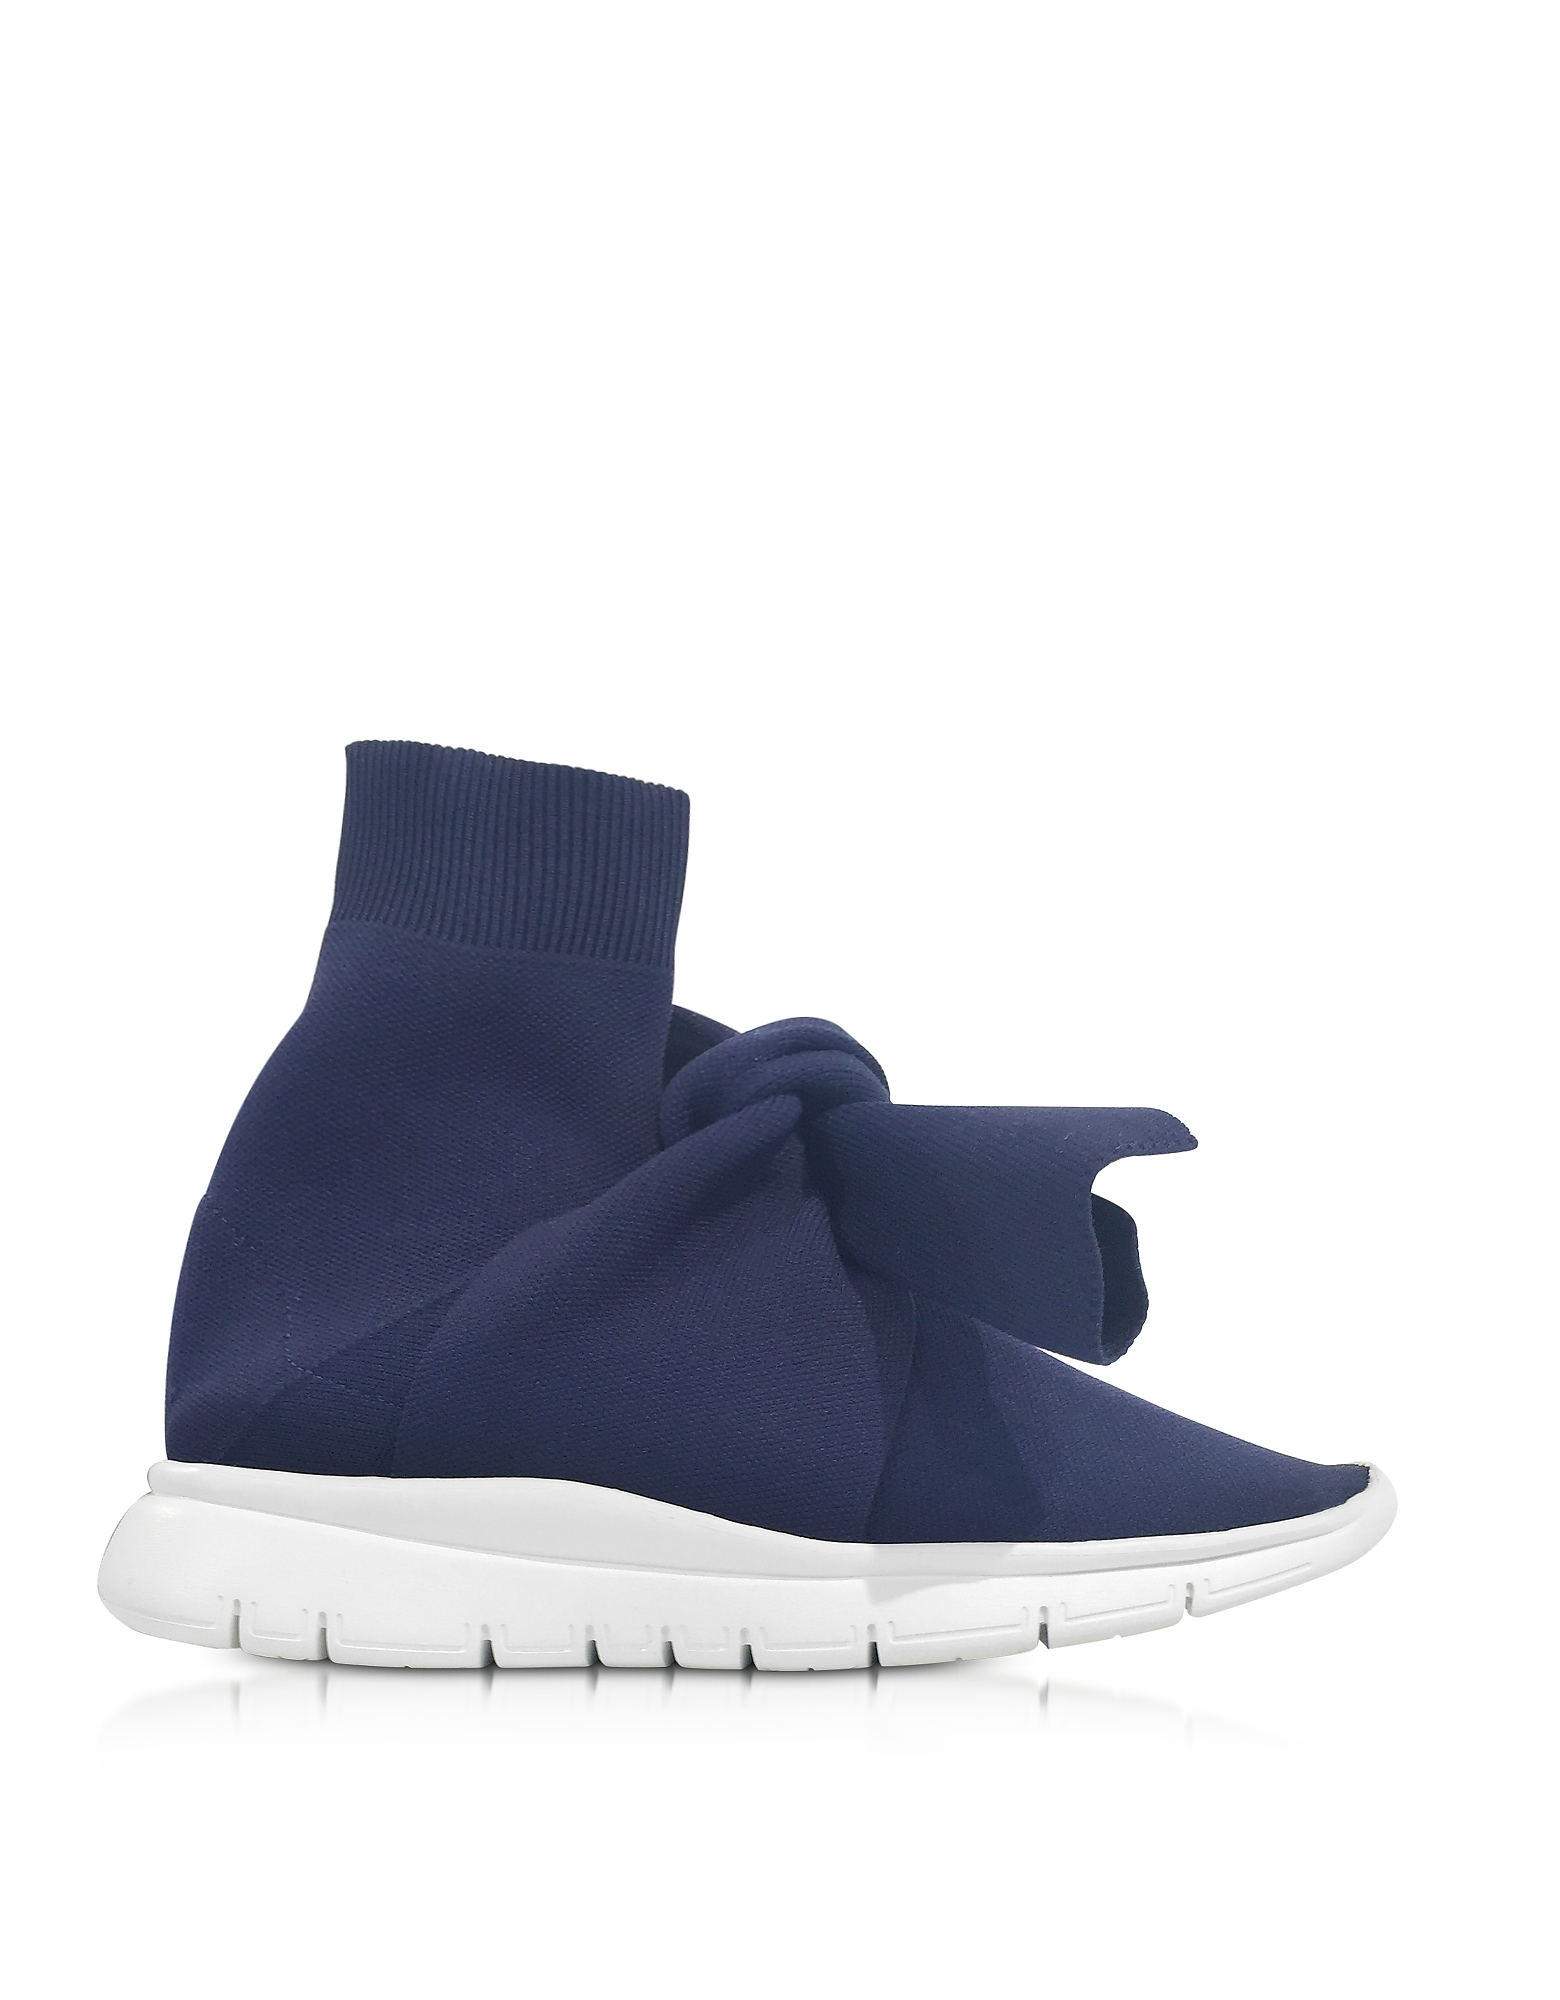 Joshua Sanders Shoes, Knot Blue Nylon Sock Sneakers